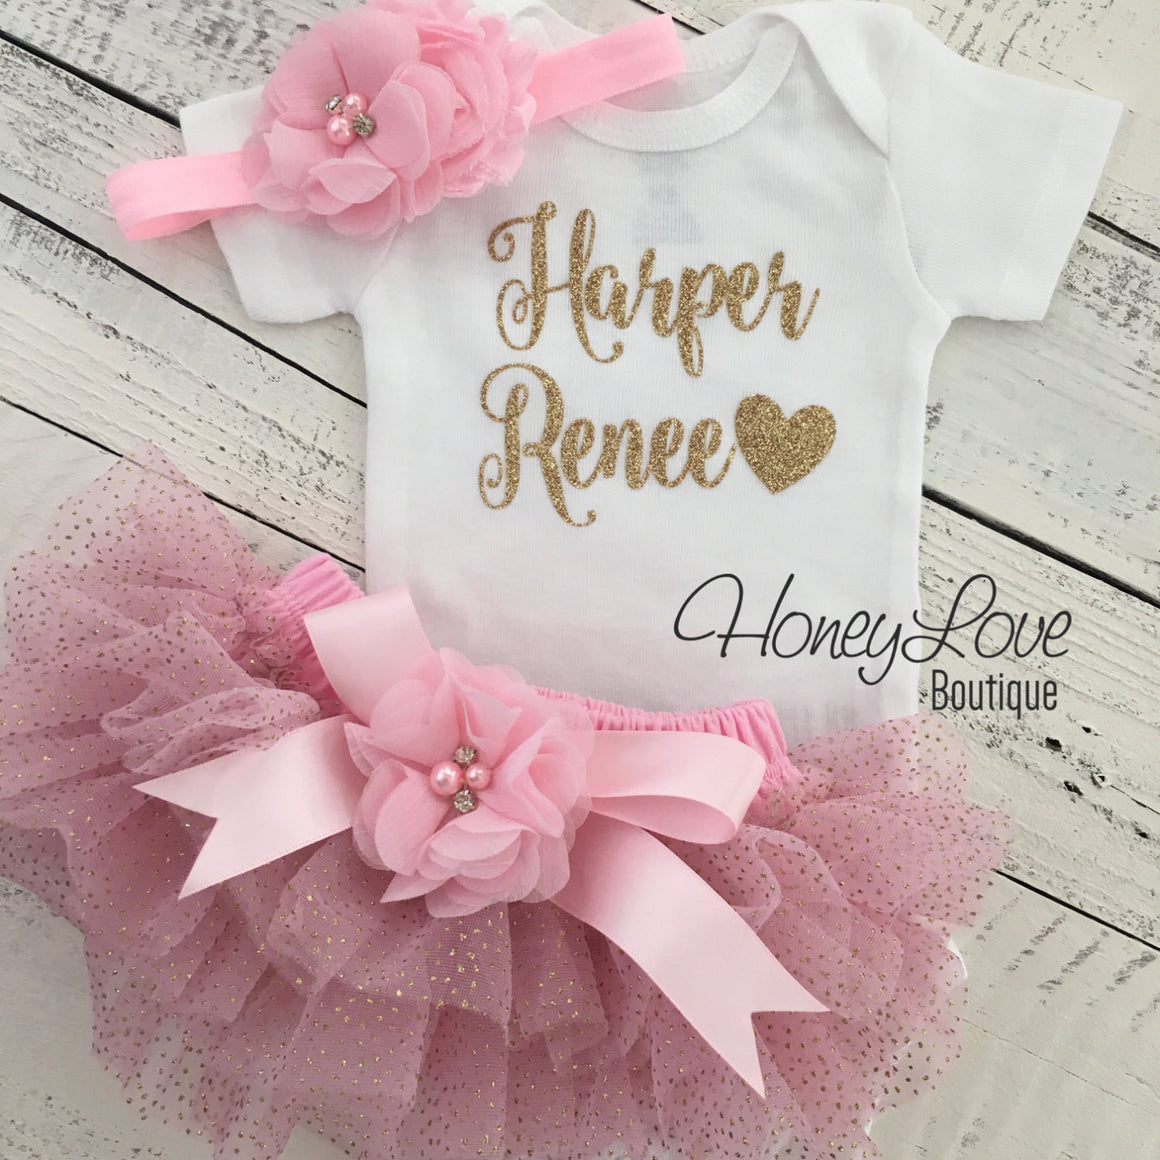 PERSONALIZED Name Outfit - Light Pink and Gold Glitter - embellished tutu skirt bloomers - HoneyLoveBoutique